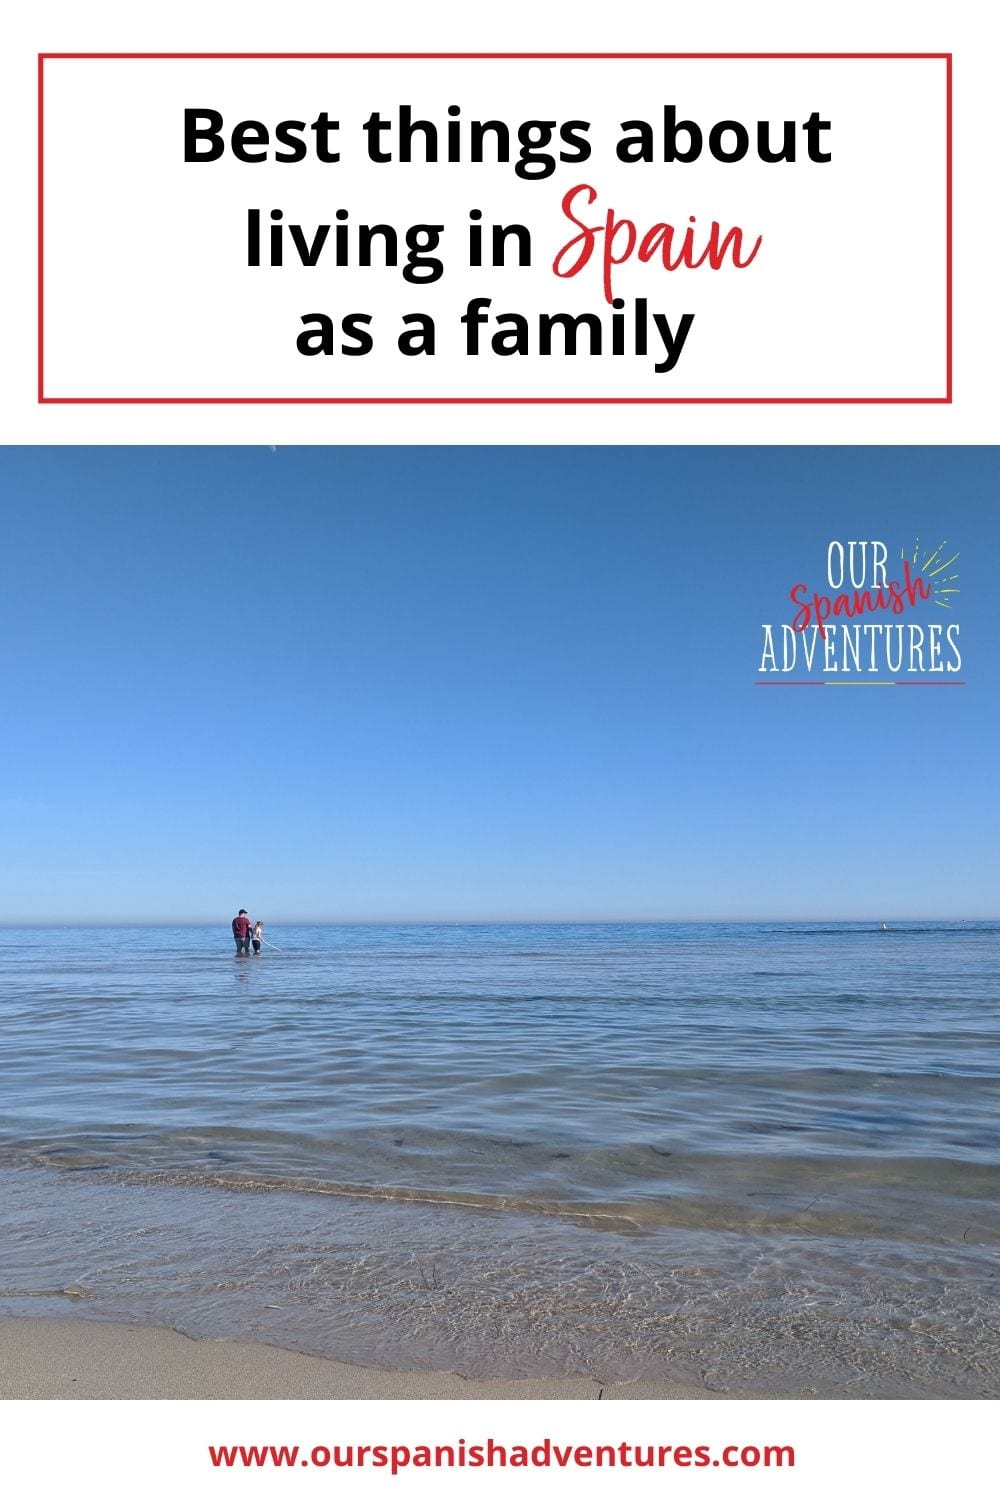 Things you'll love about living in Spain as a family | Our Spanish Adventures